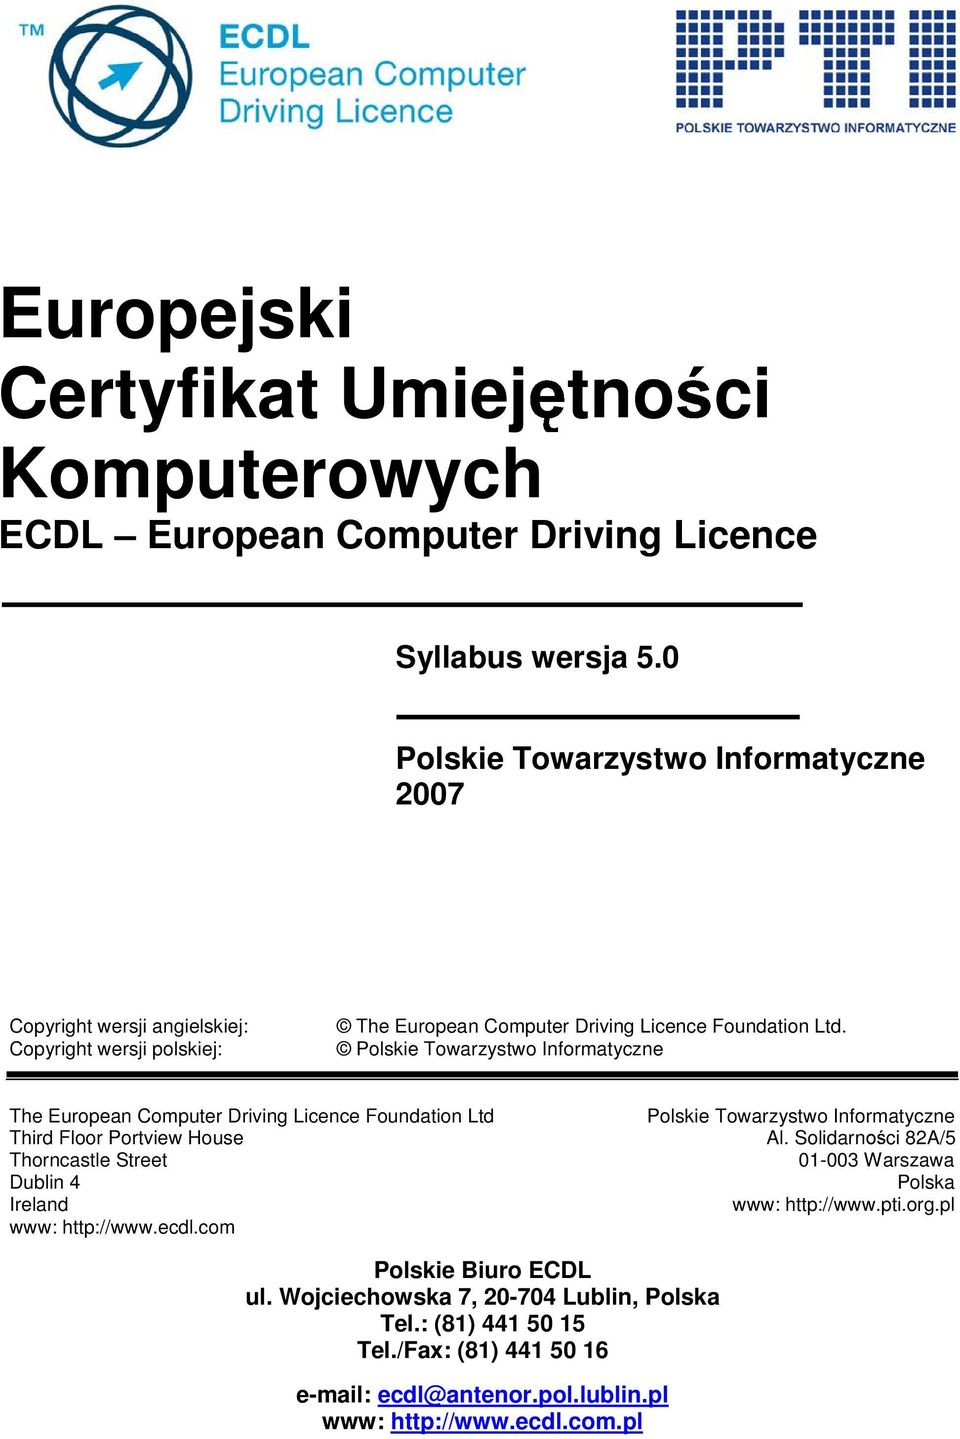 Polskie Towarzystwo Informatyczne The European Computer Driving Licence Foundation Ltd Third Floor Portview House Thorncastle Street Dublin 4 Ireland www: http://www.ecdl.